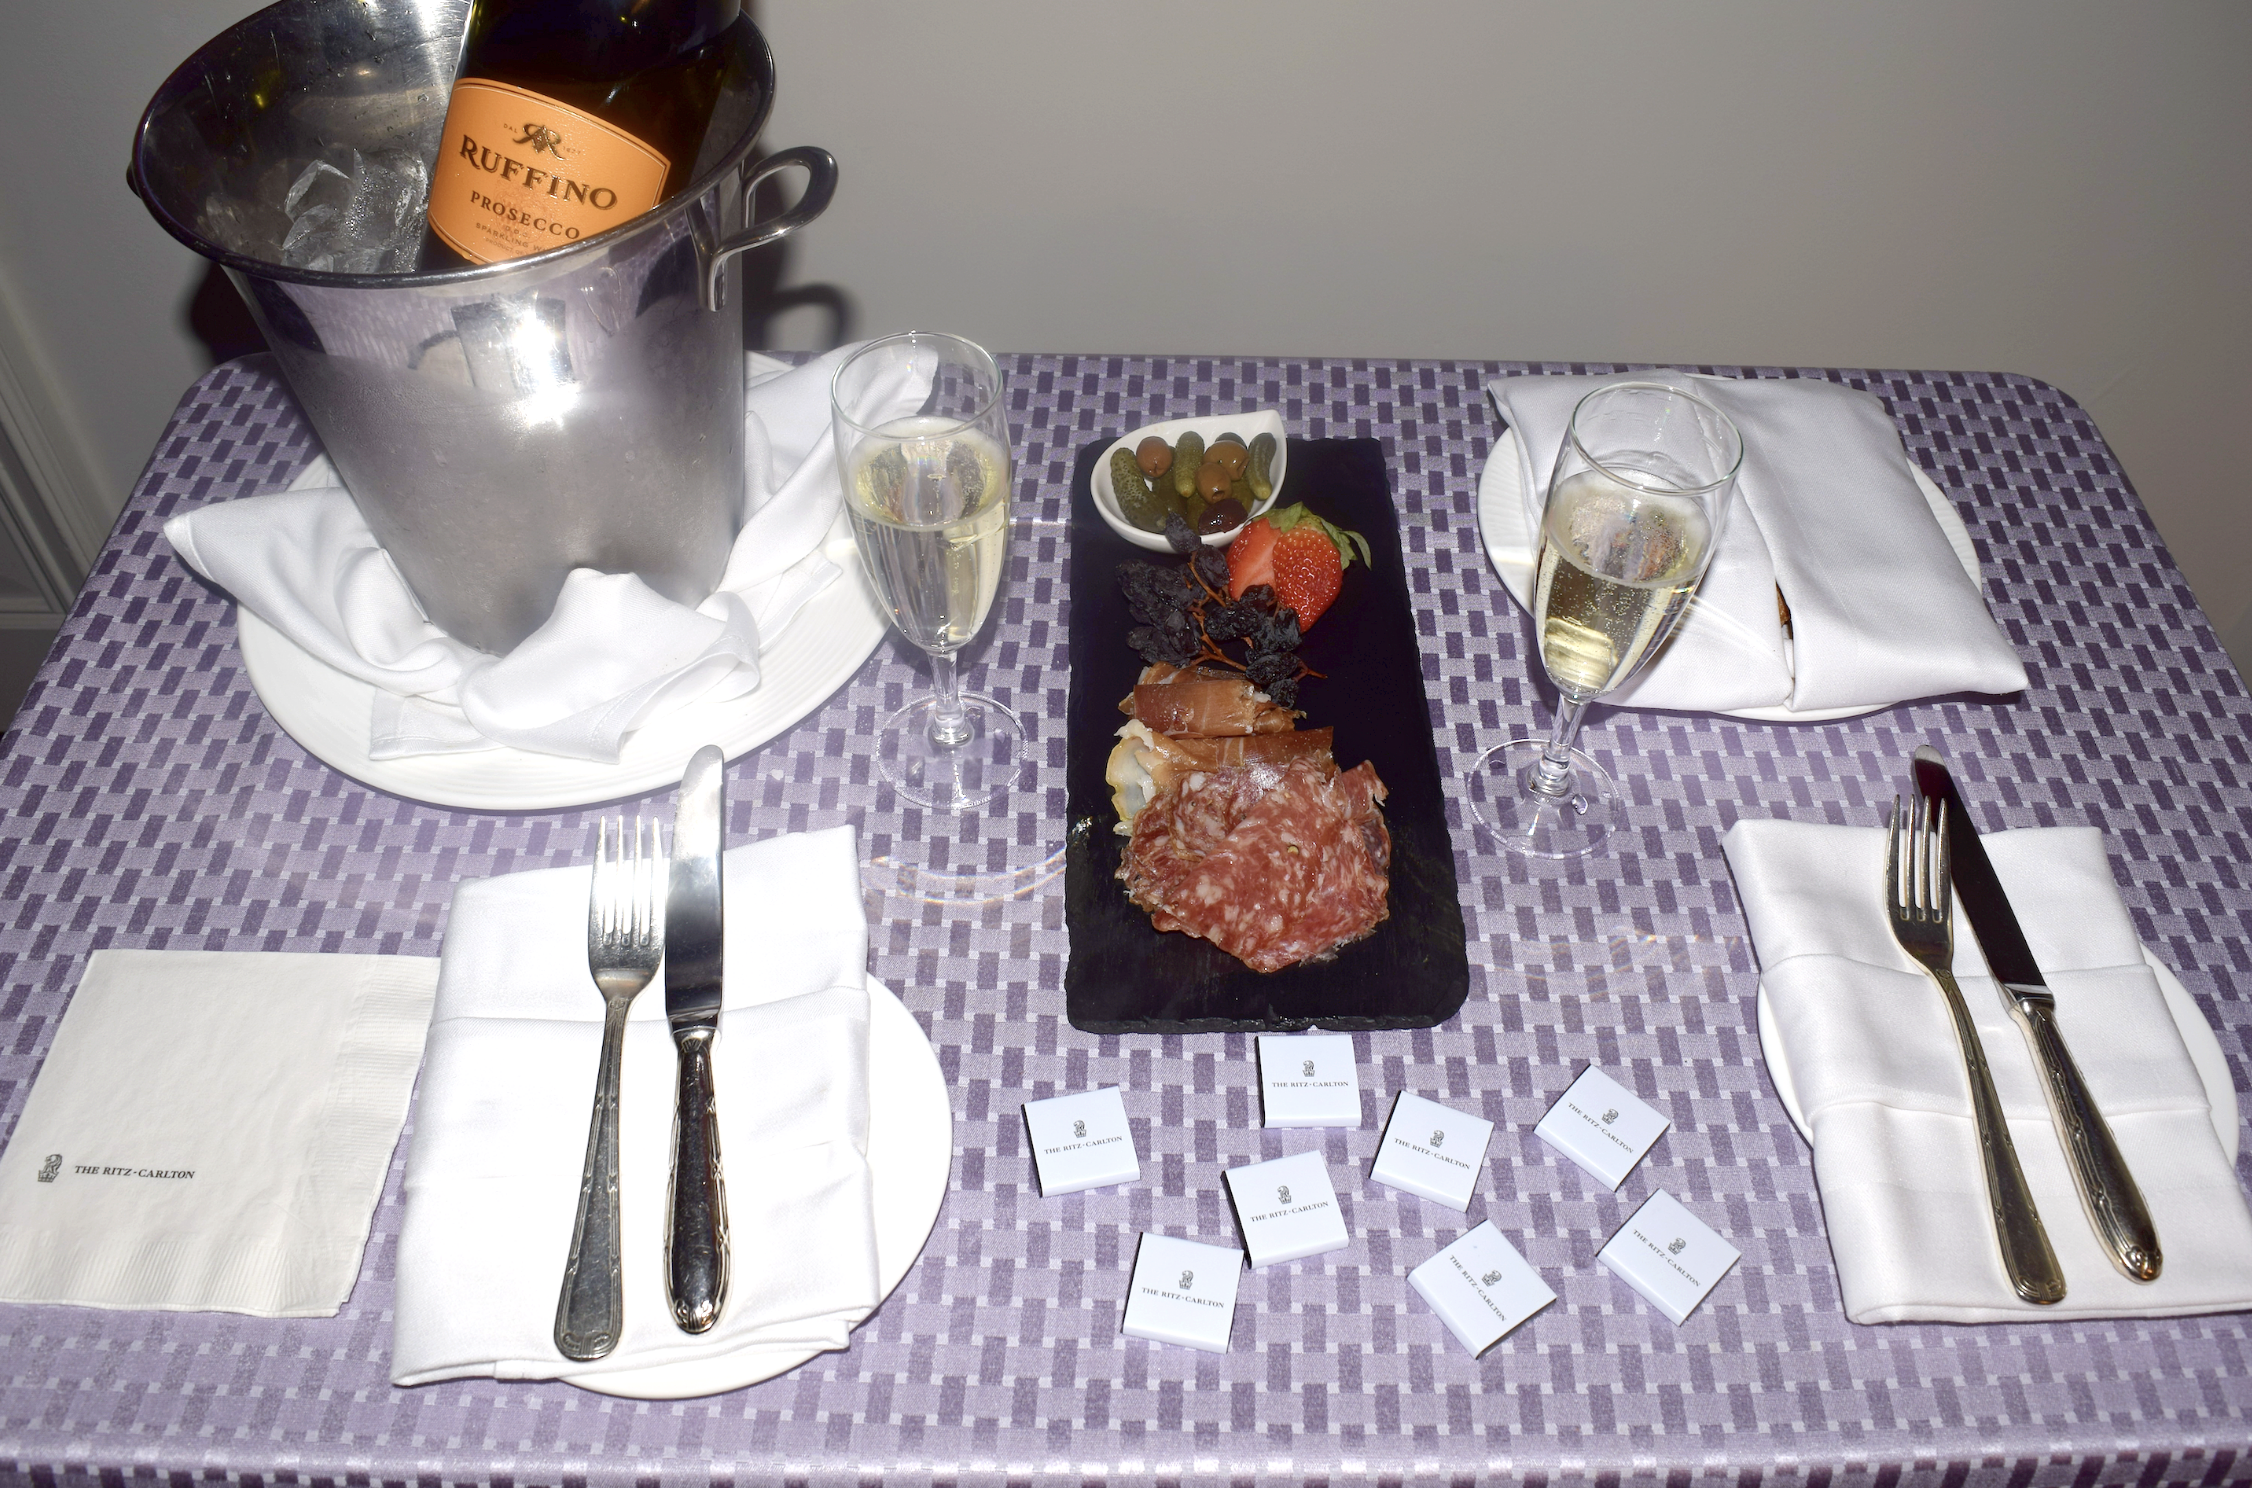 A warm welcome at The Ritz-Carlton Pentagon City where we were served a bottle of sparkling wine and a cheese and charcuterie board upon our arrival.